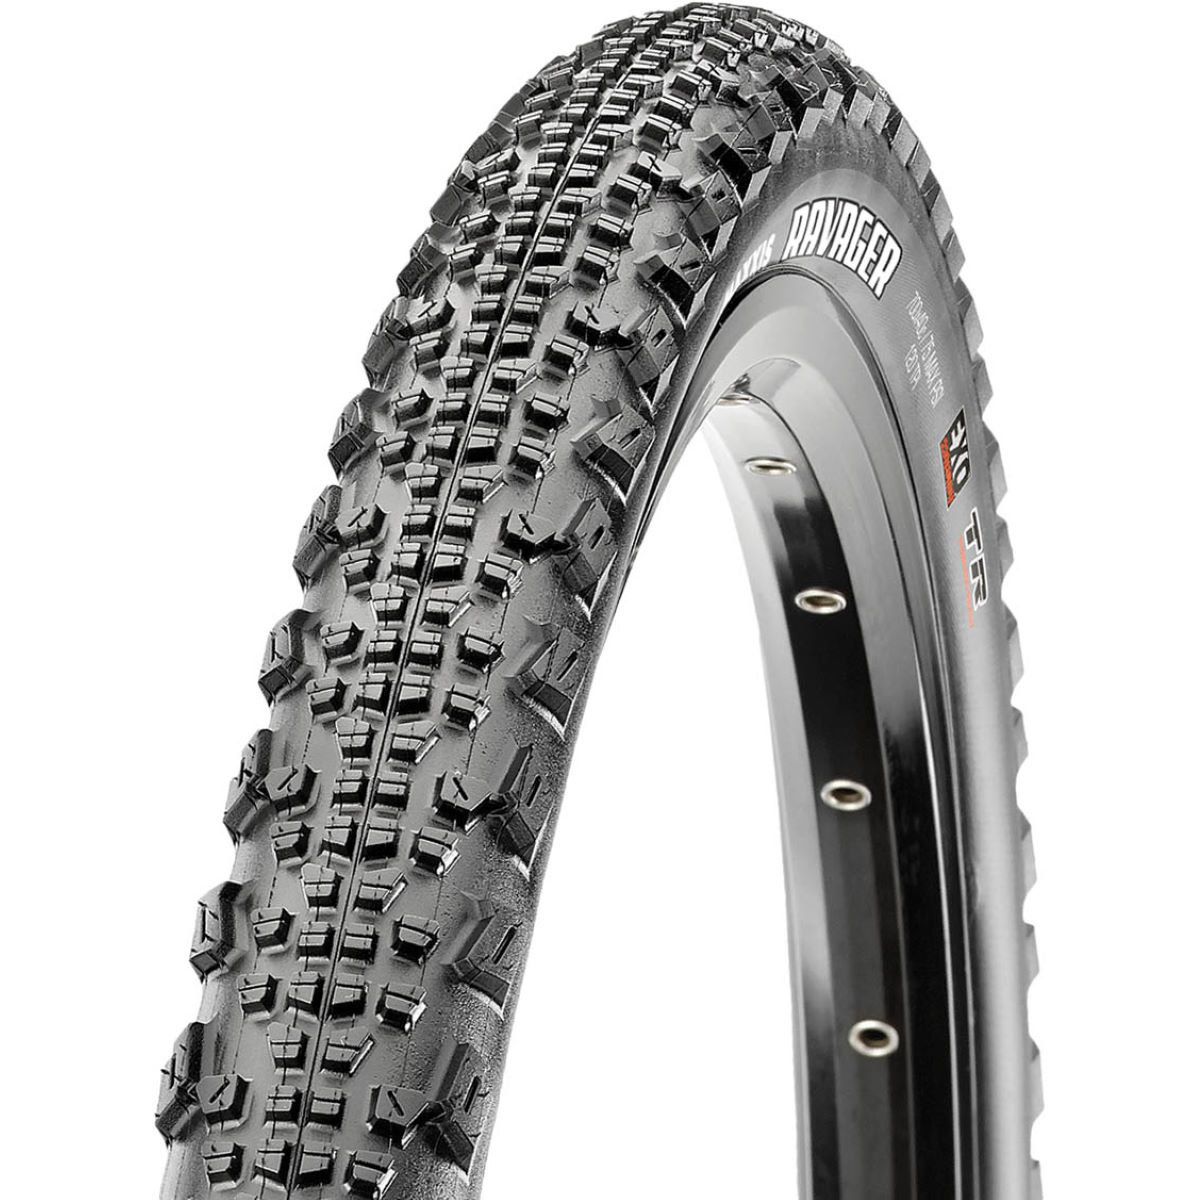 Maxxis Maxxis Ravager Gravel Tyre - EXO - TR   Tyres